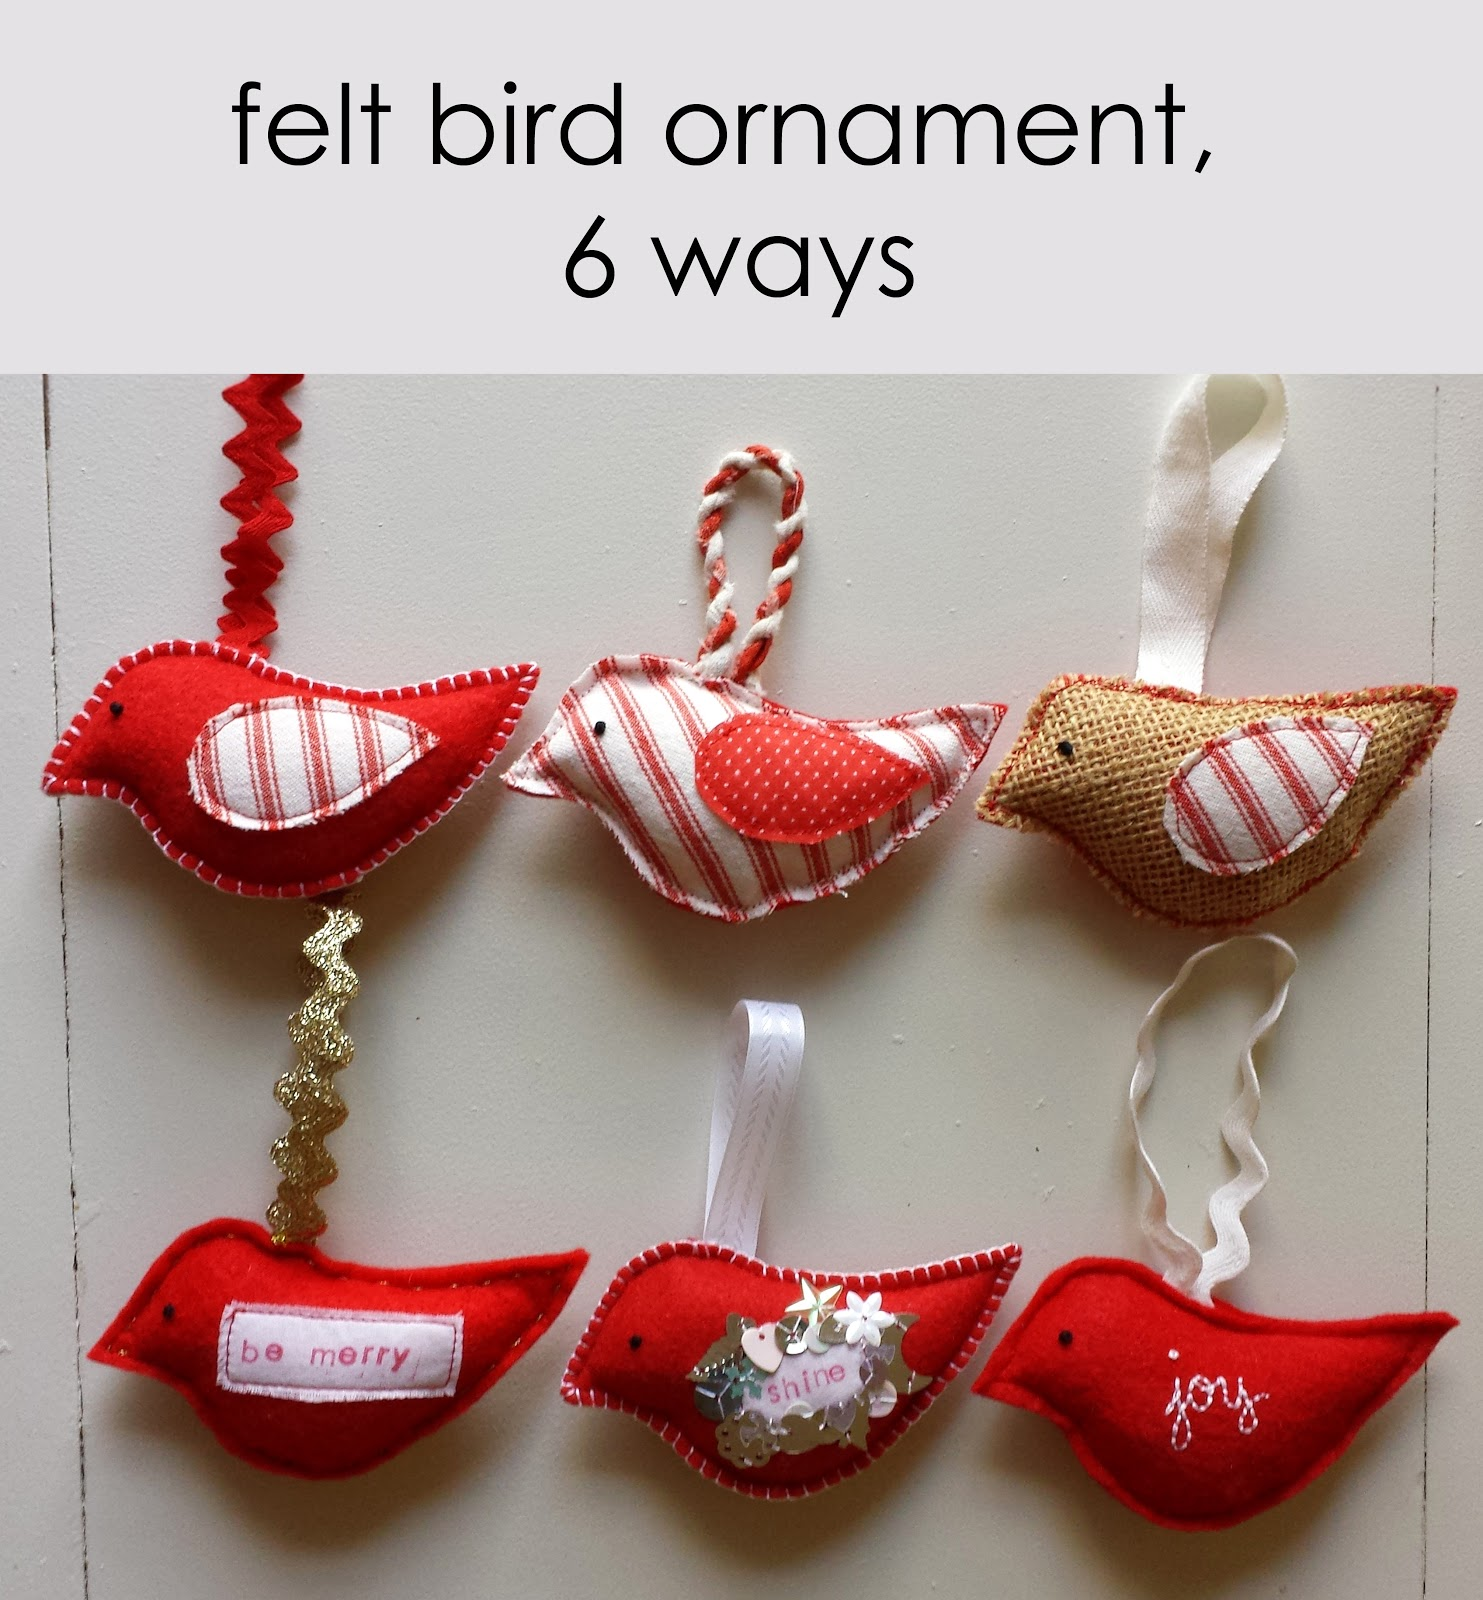 Burlap bird ornaments - Talk